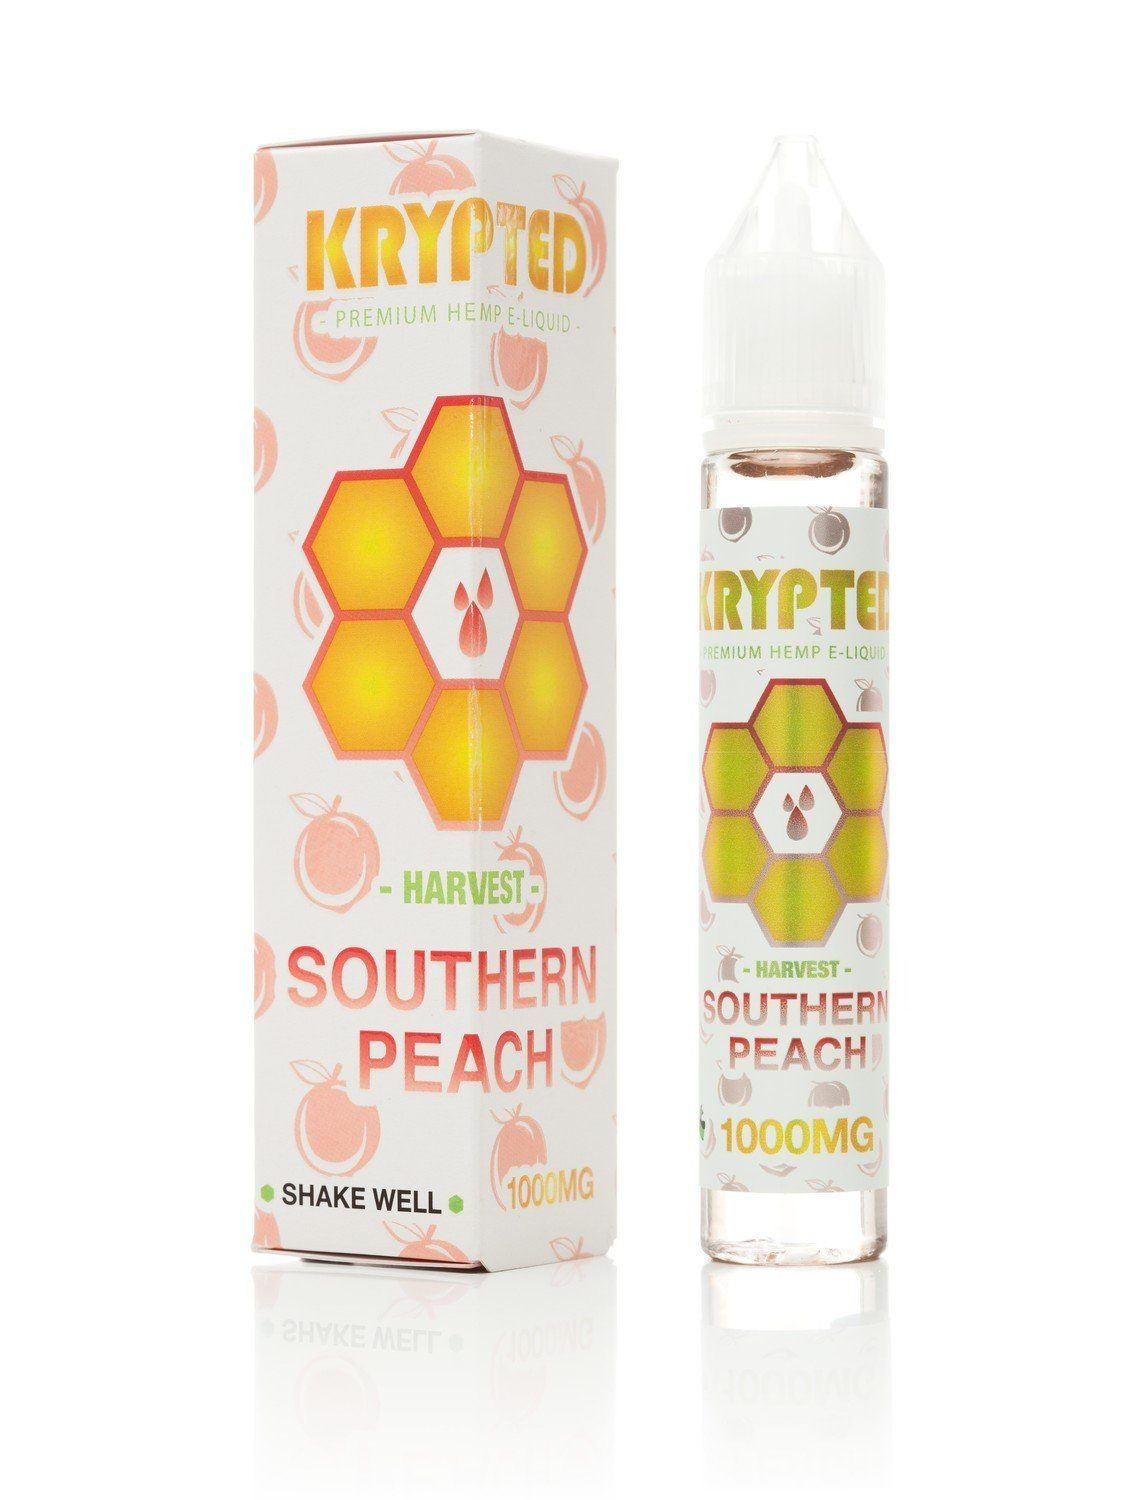 Krypted CBD Southern Peach CBD Vape Juice